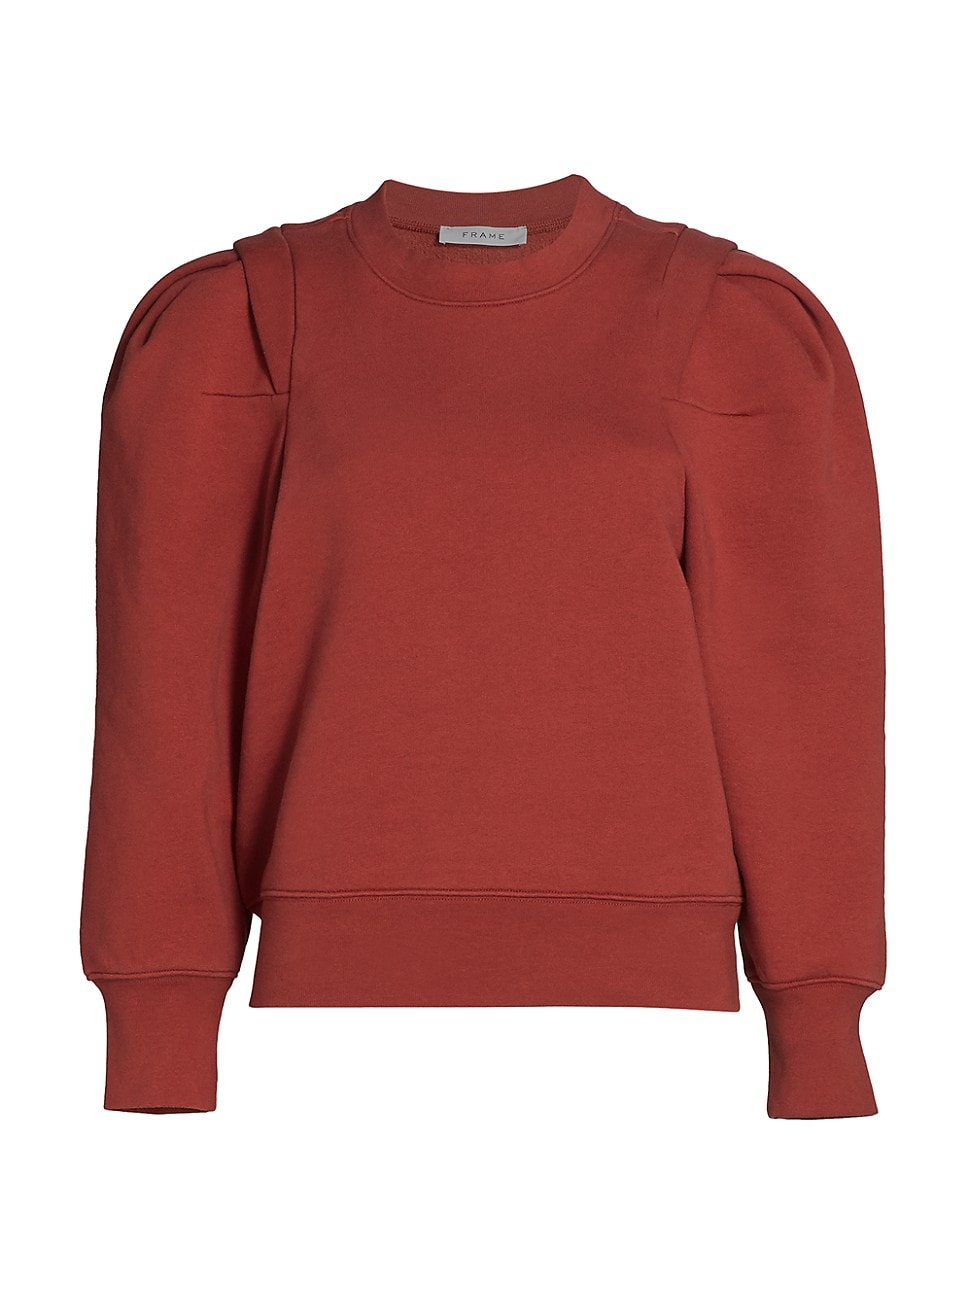 Frame WOMEN'S PLEATED PANEL PUFF-SLEEVE SWEATSHIRT